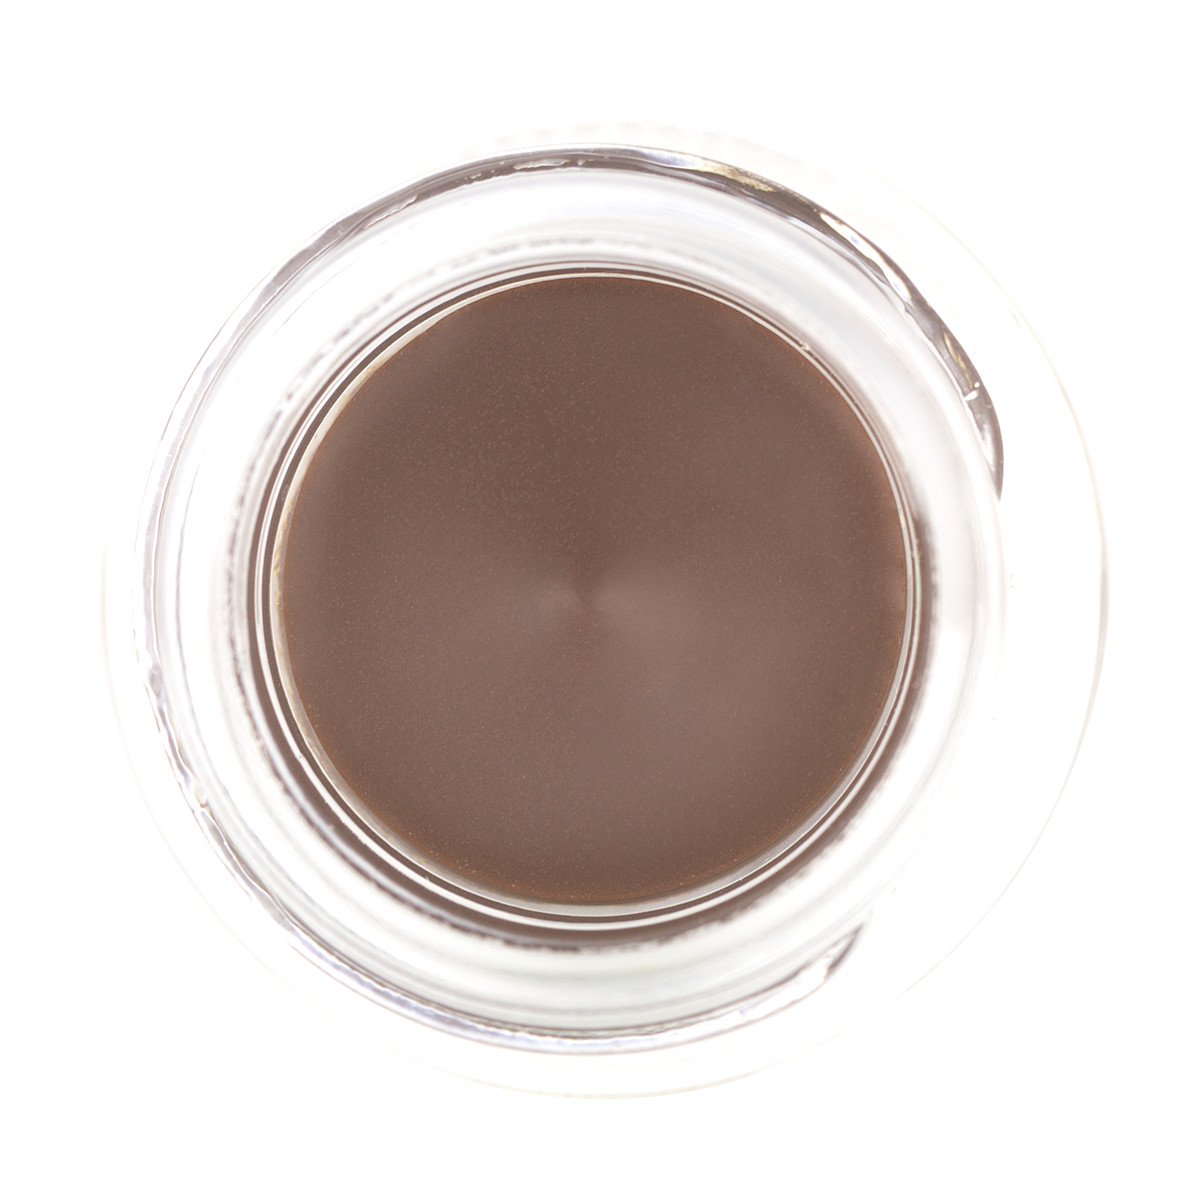 Billion Dollar Brows Brow Butter Pomade Kit in Taupe